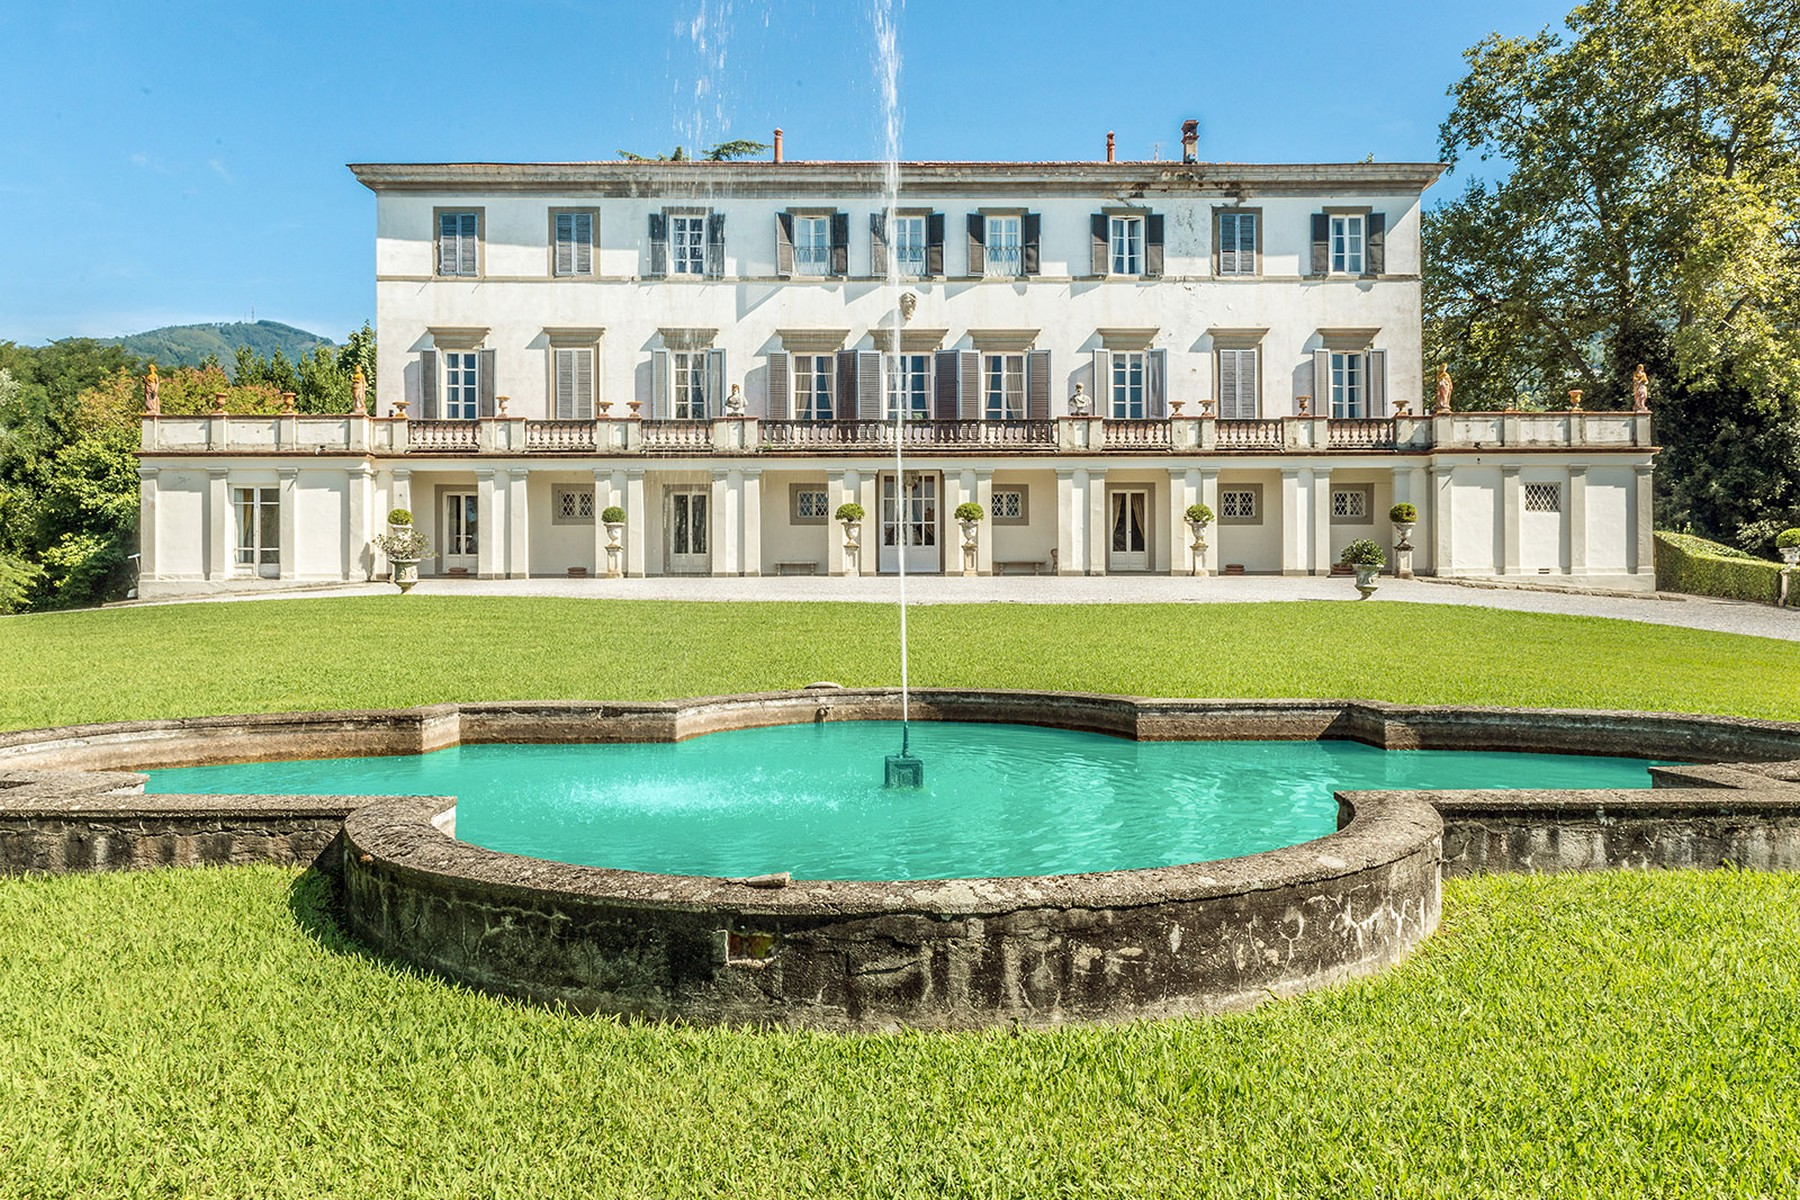 Single Family Home for Sale at Incomparable historic mansion Lucca, Lucca, Italy